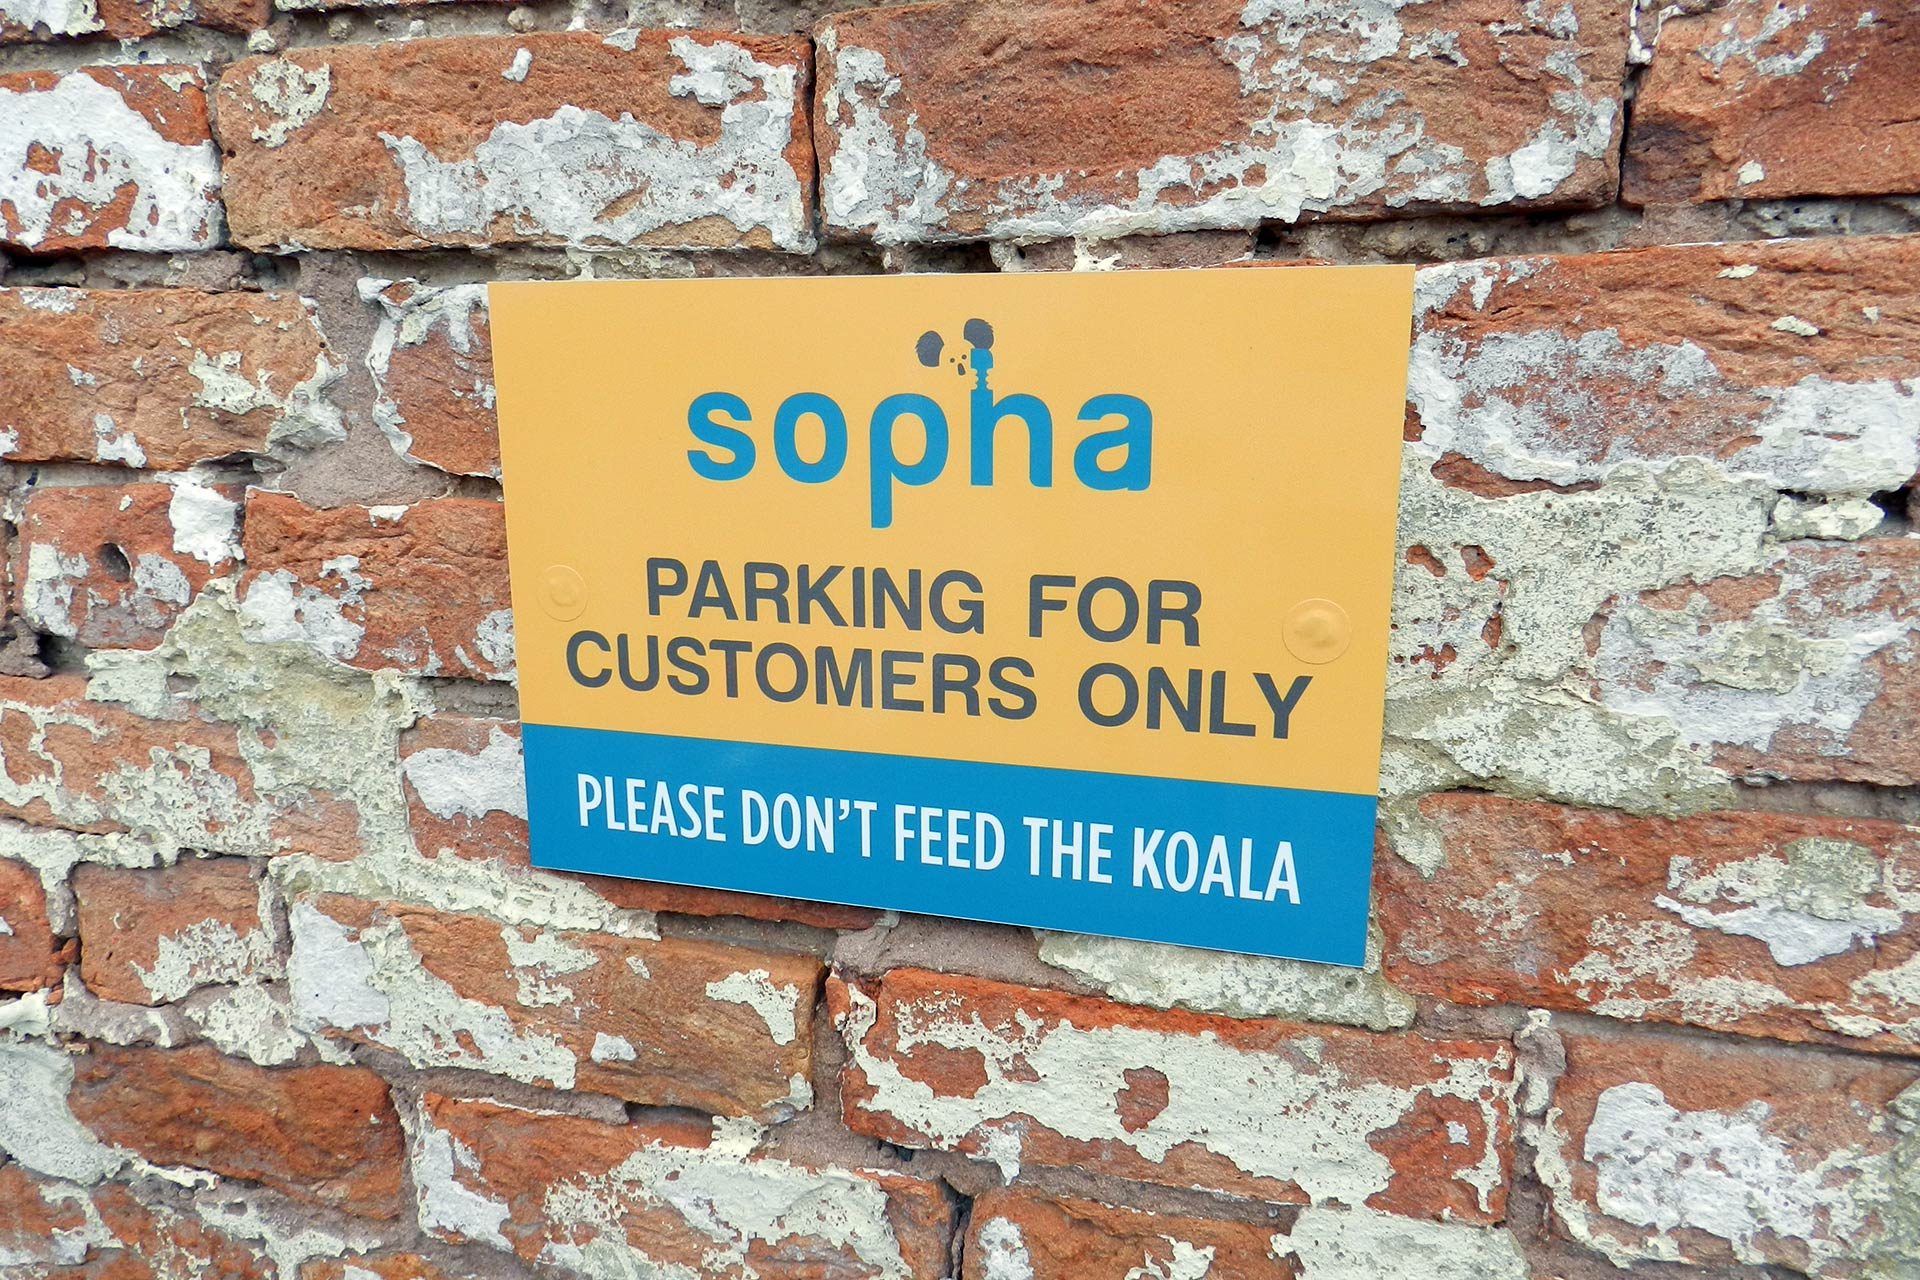 Sopha-furniture-branded-signage-taunton-1 The Importance of Branding & Graphic Design in a Business